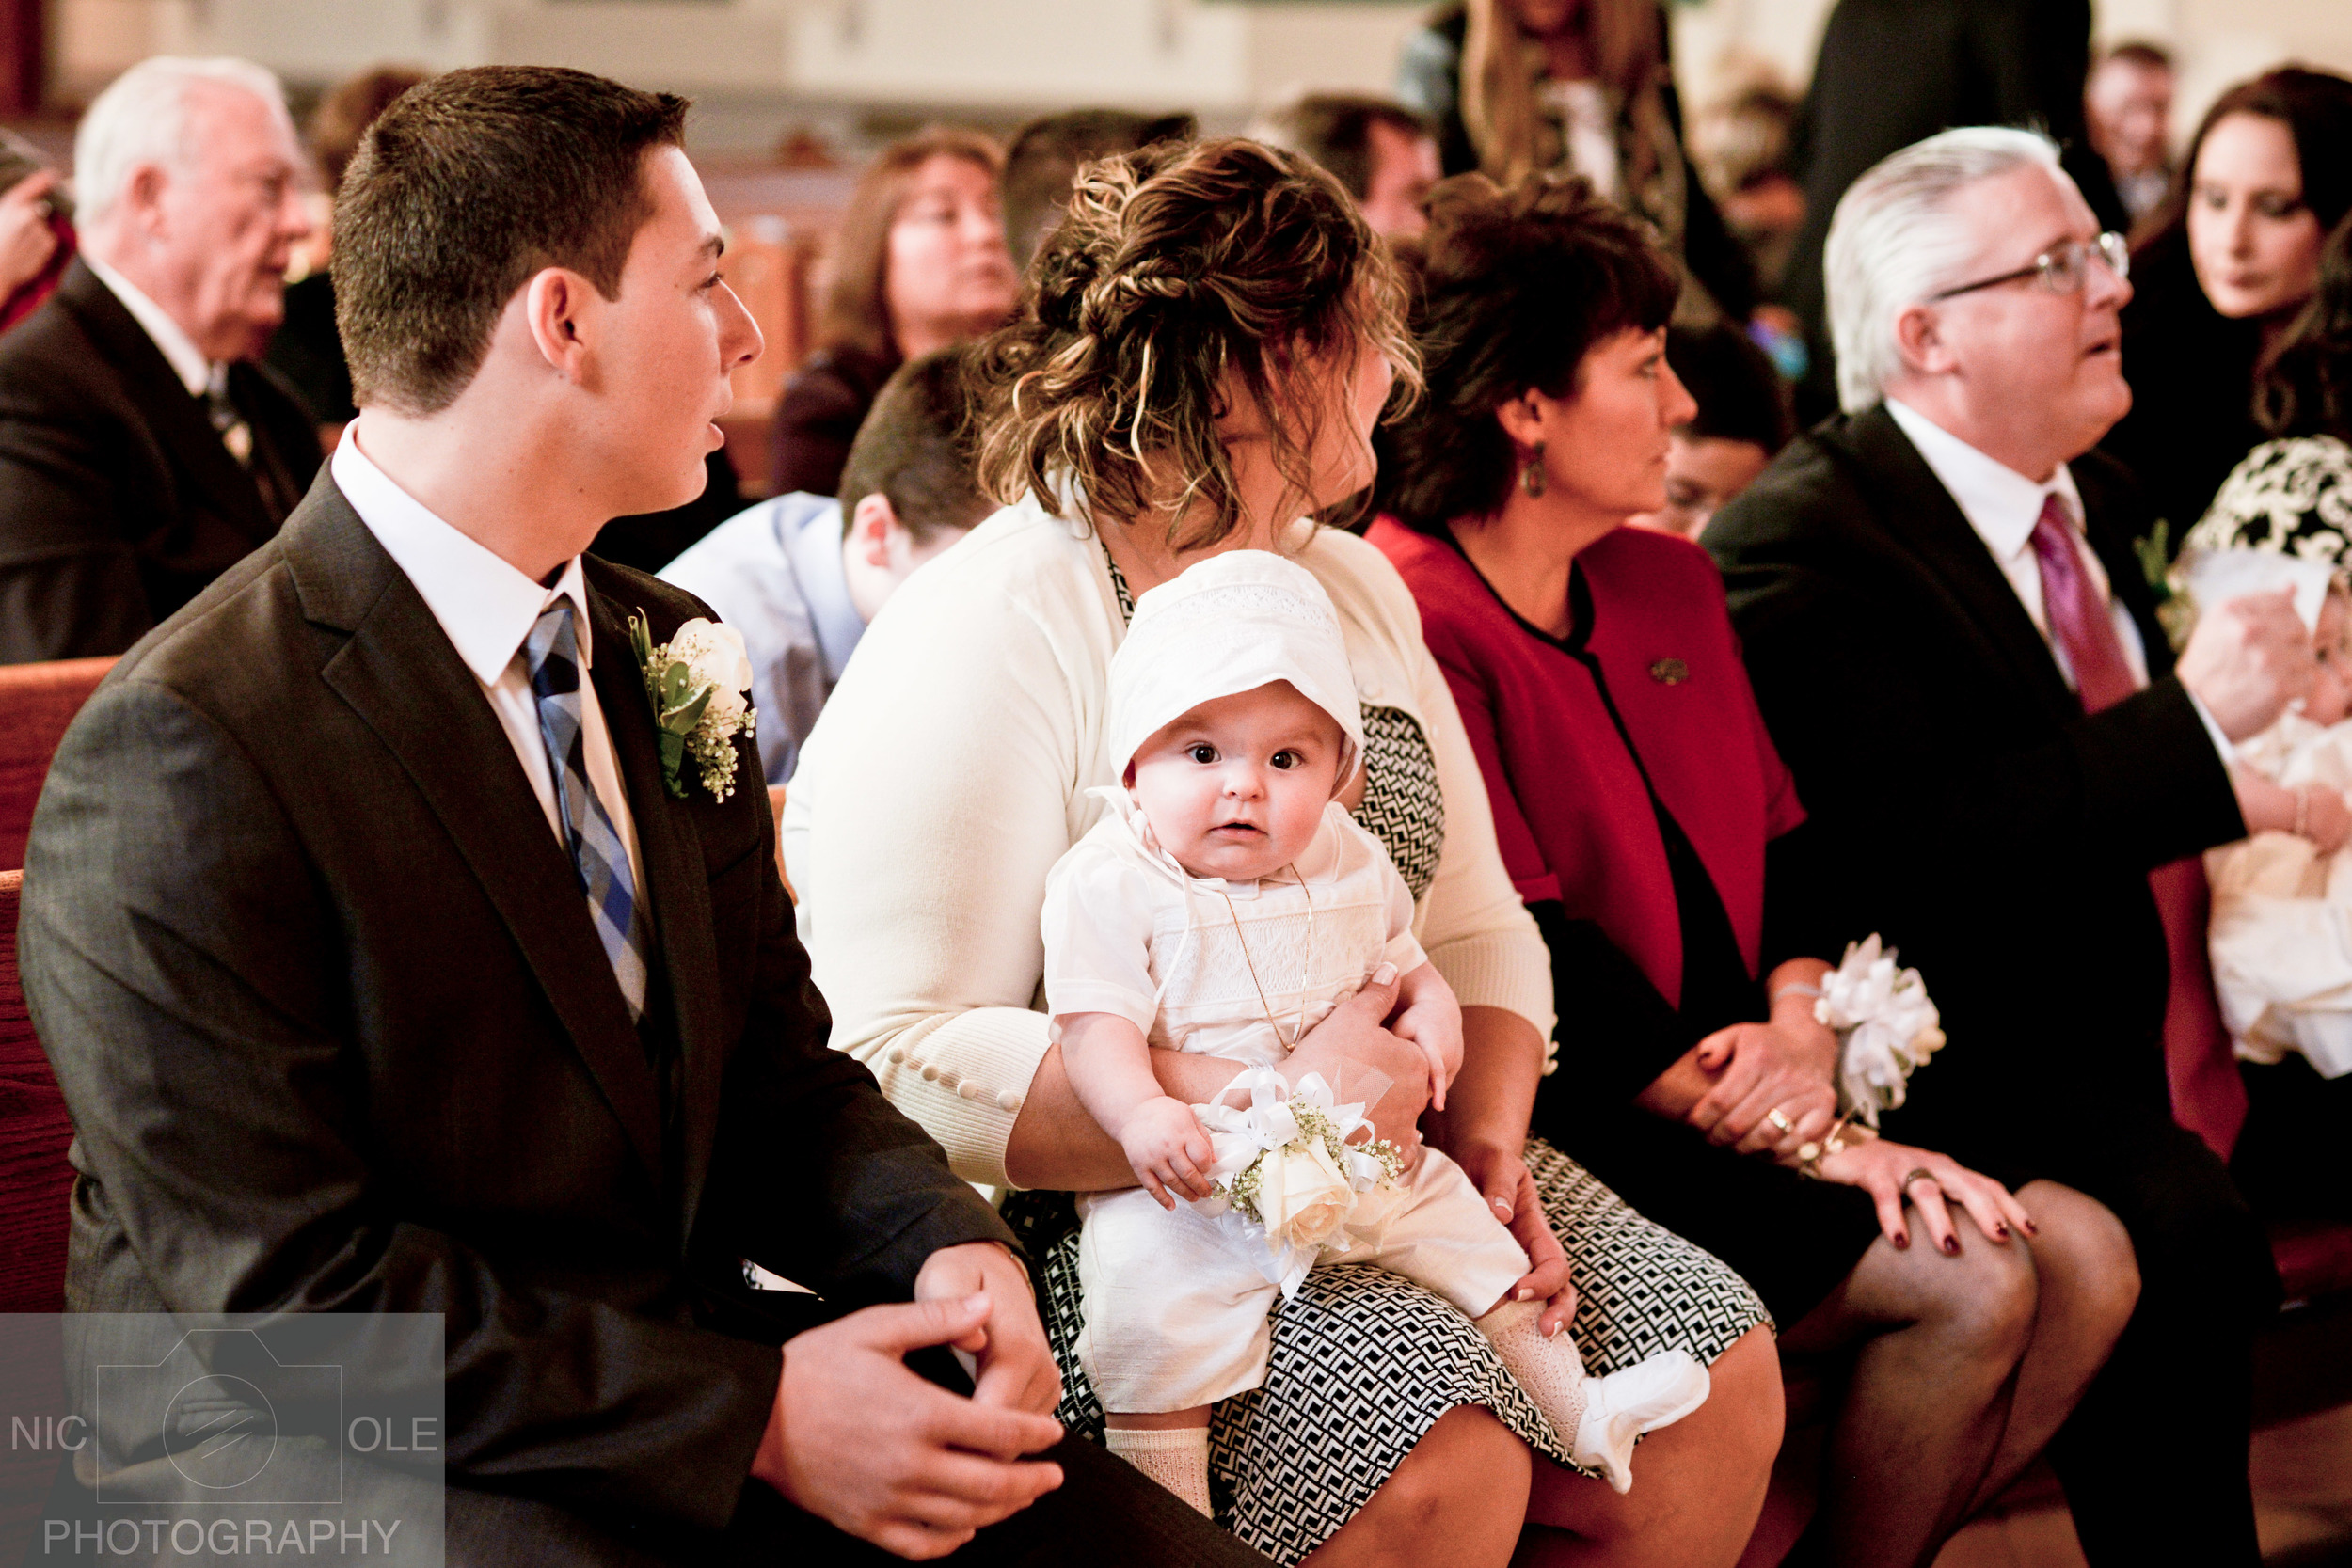 Kelly Twins Christening - NIC-OLE Photography--17.jpg